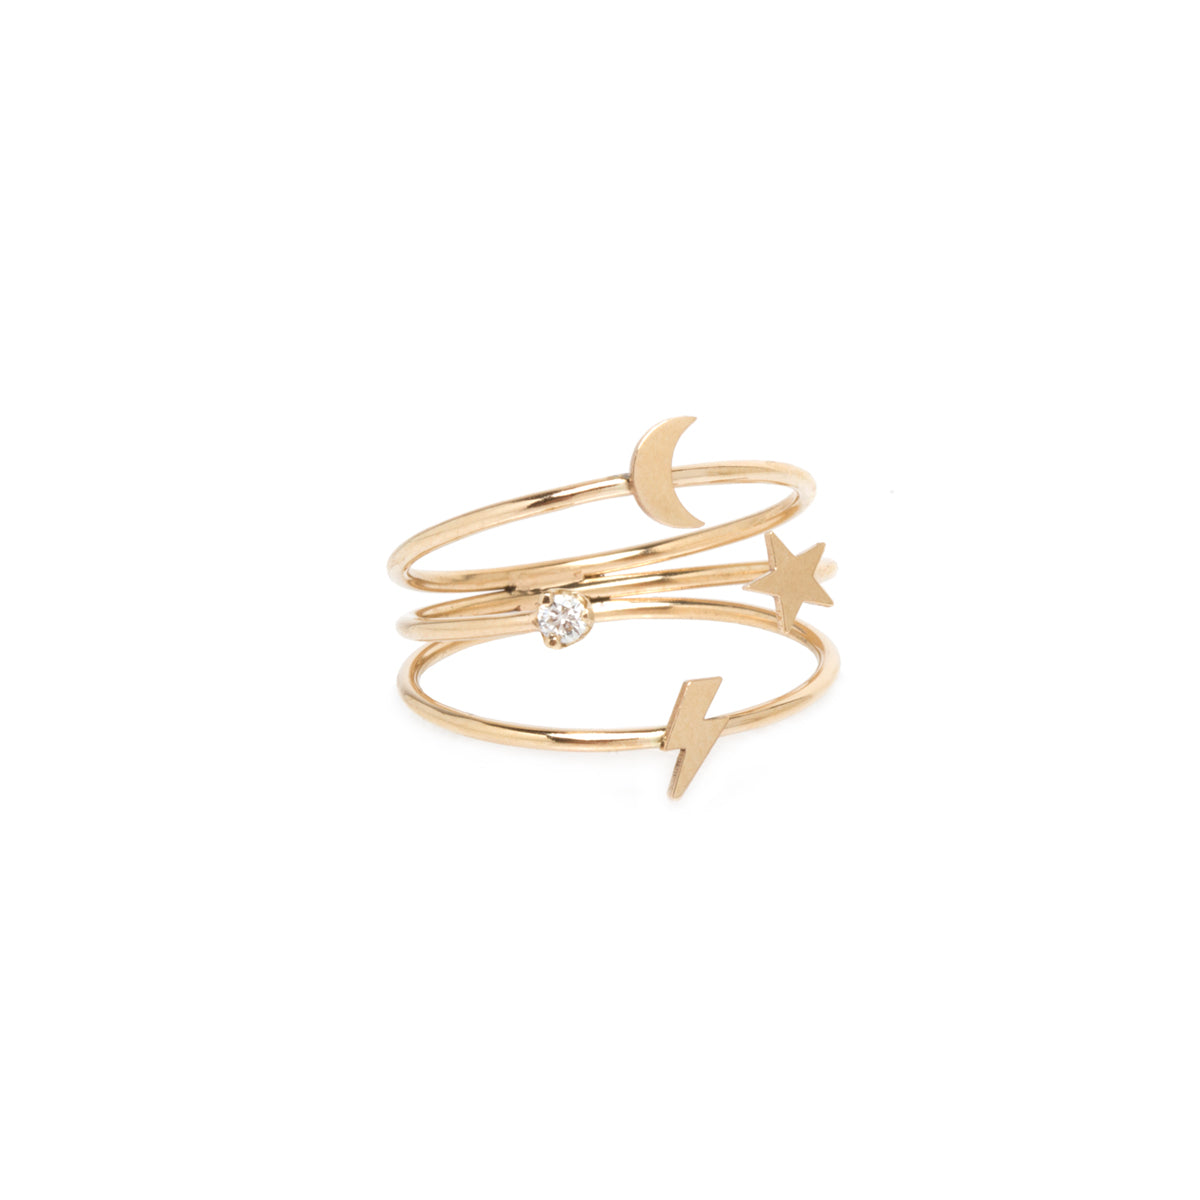 14k gold 3 band ring with prong diamond and itty bitty symbols